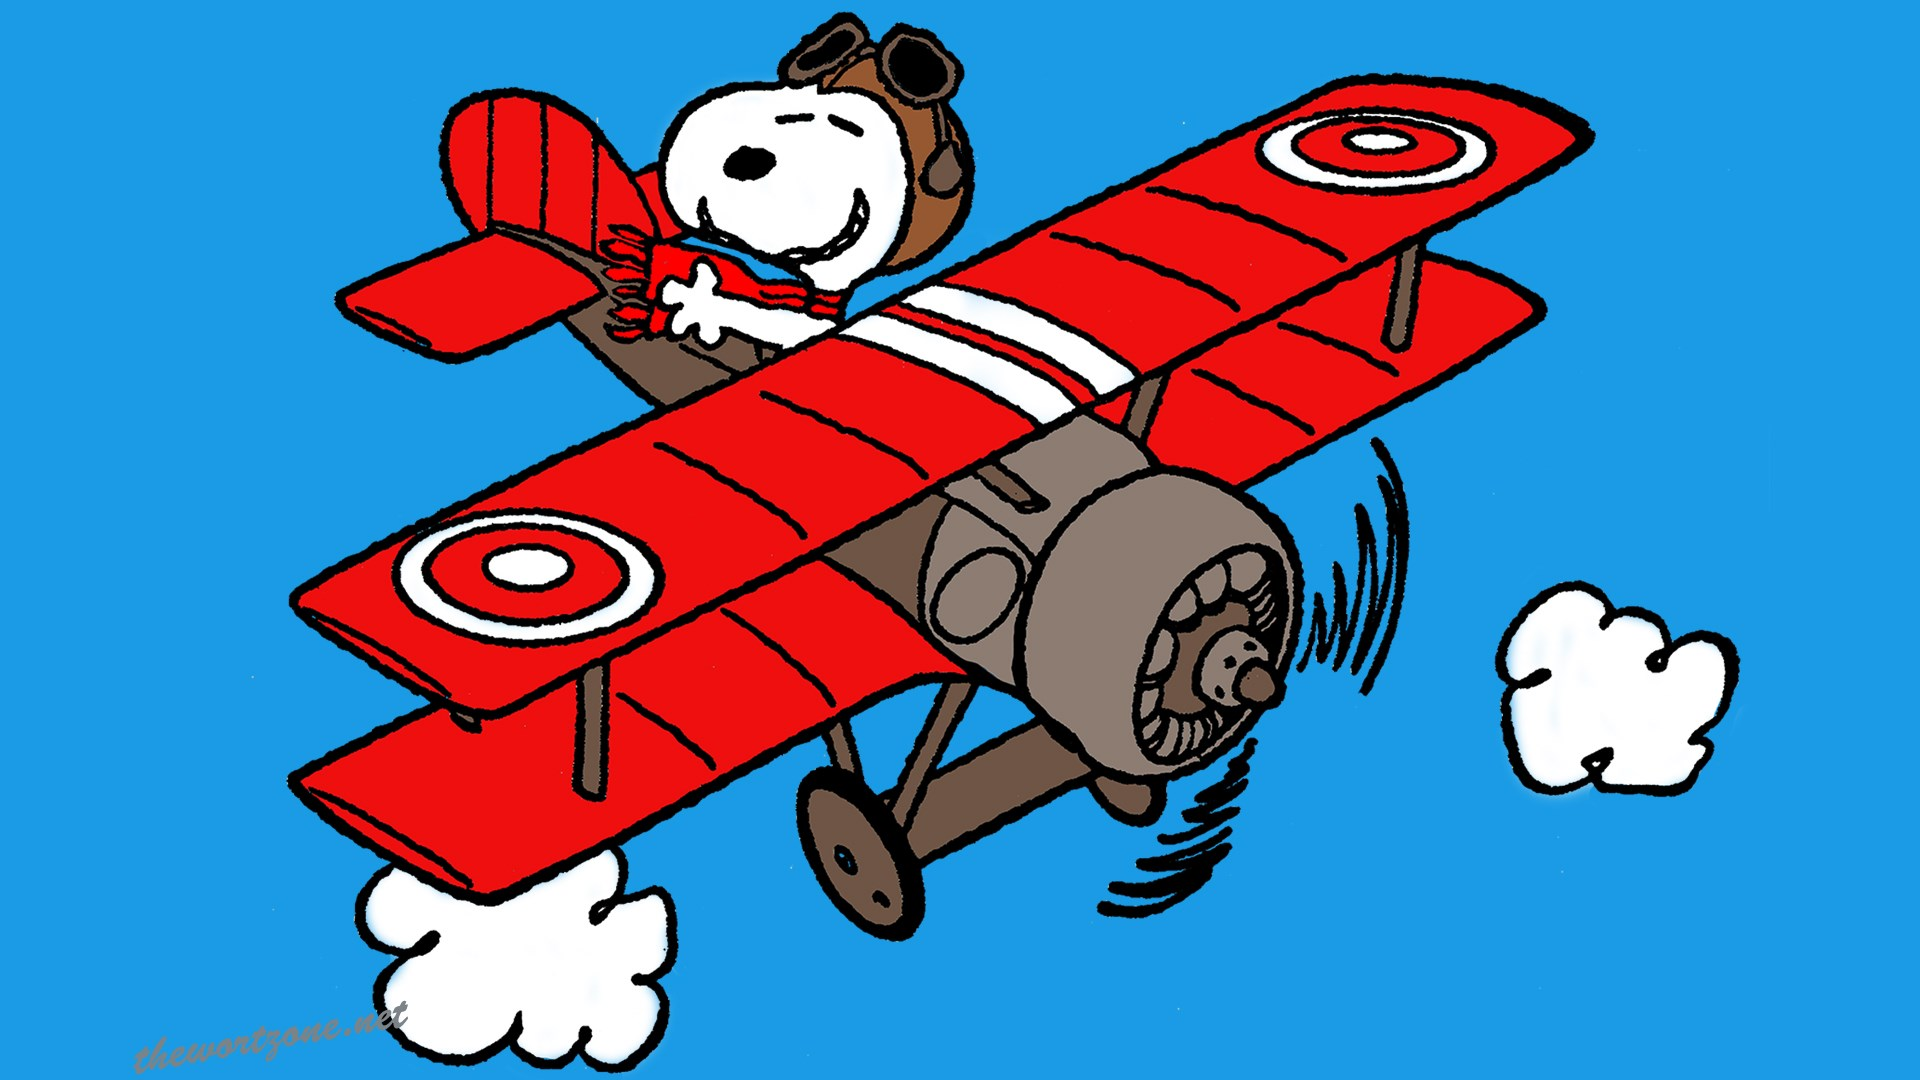 free-computer-for-snoopy-wallpaper-wp3401131